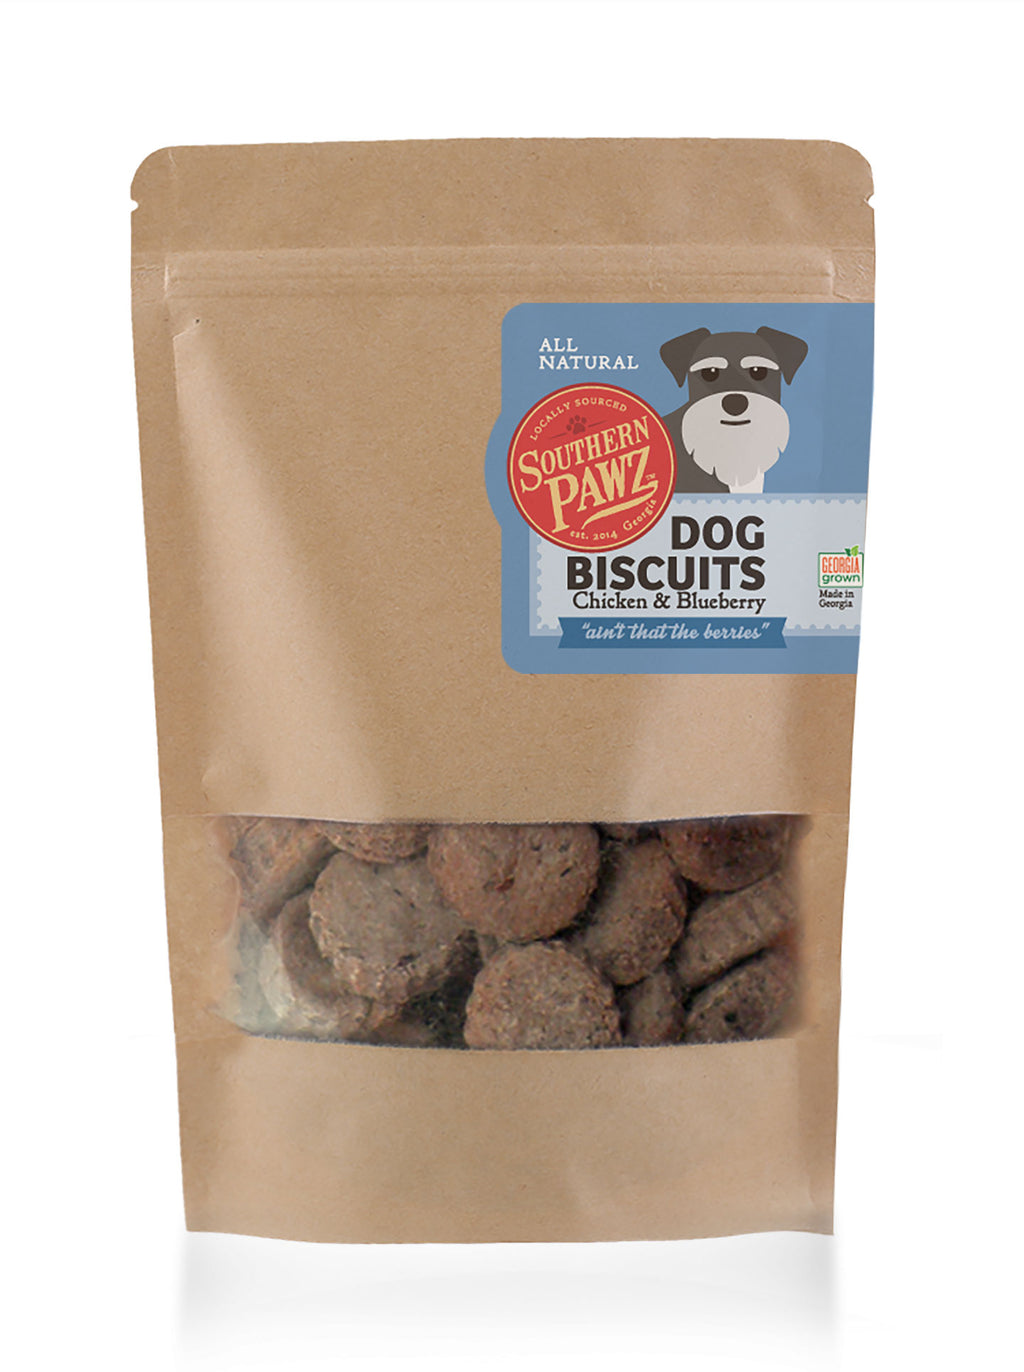 Dog Biscuits - Chicken and Blueberry 6 oz. Resealable Bag Cookie Size Bites